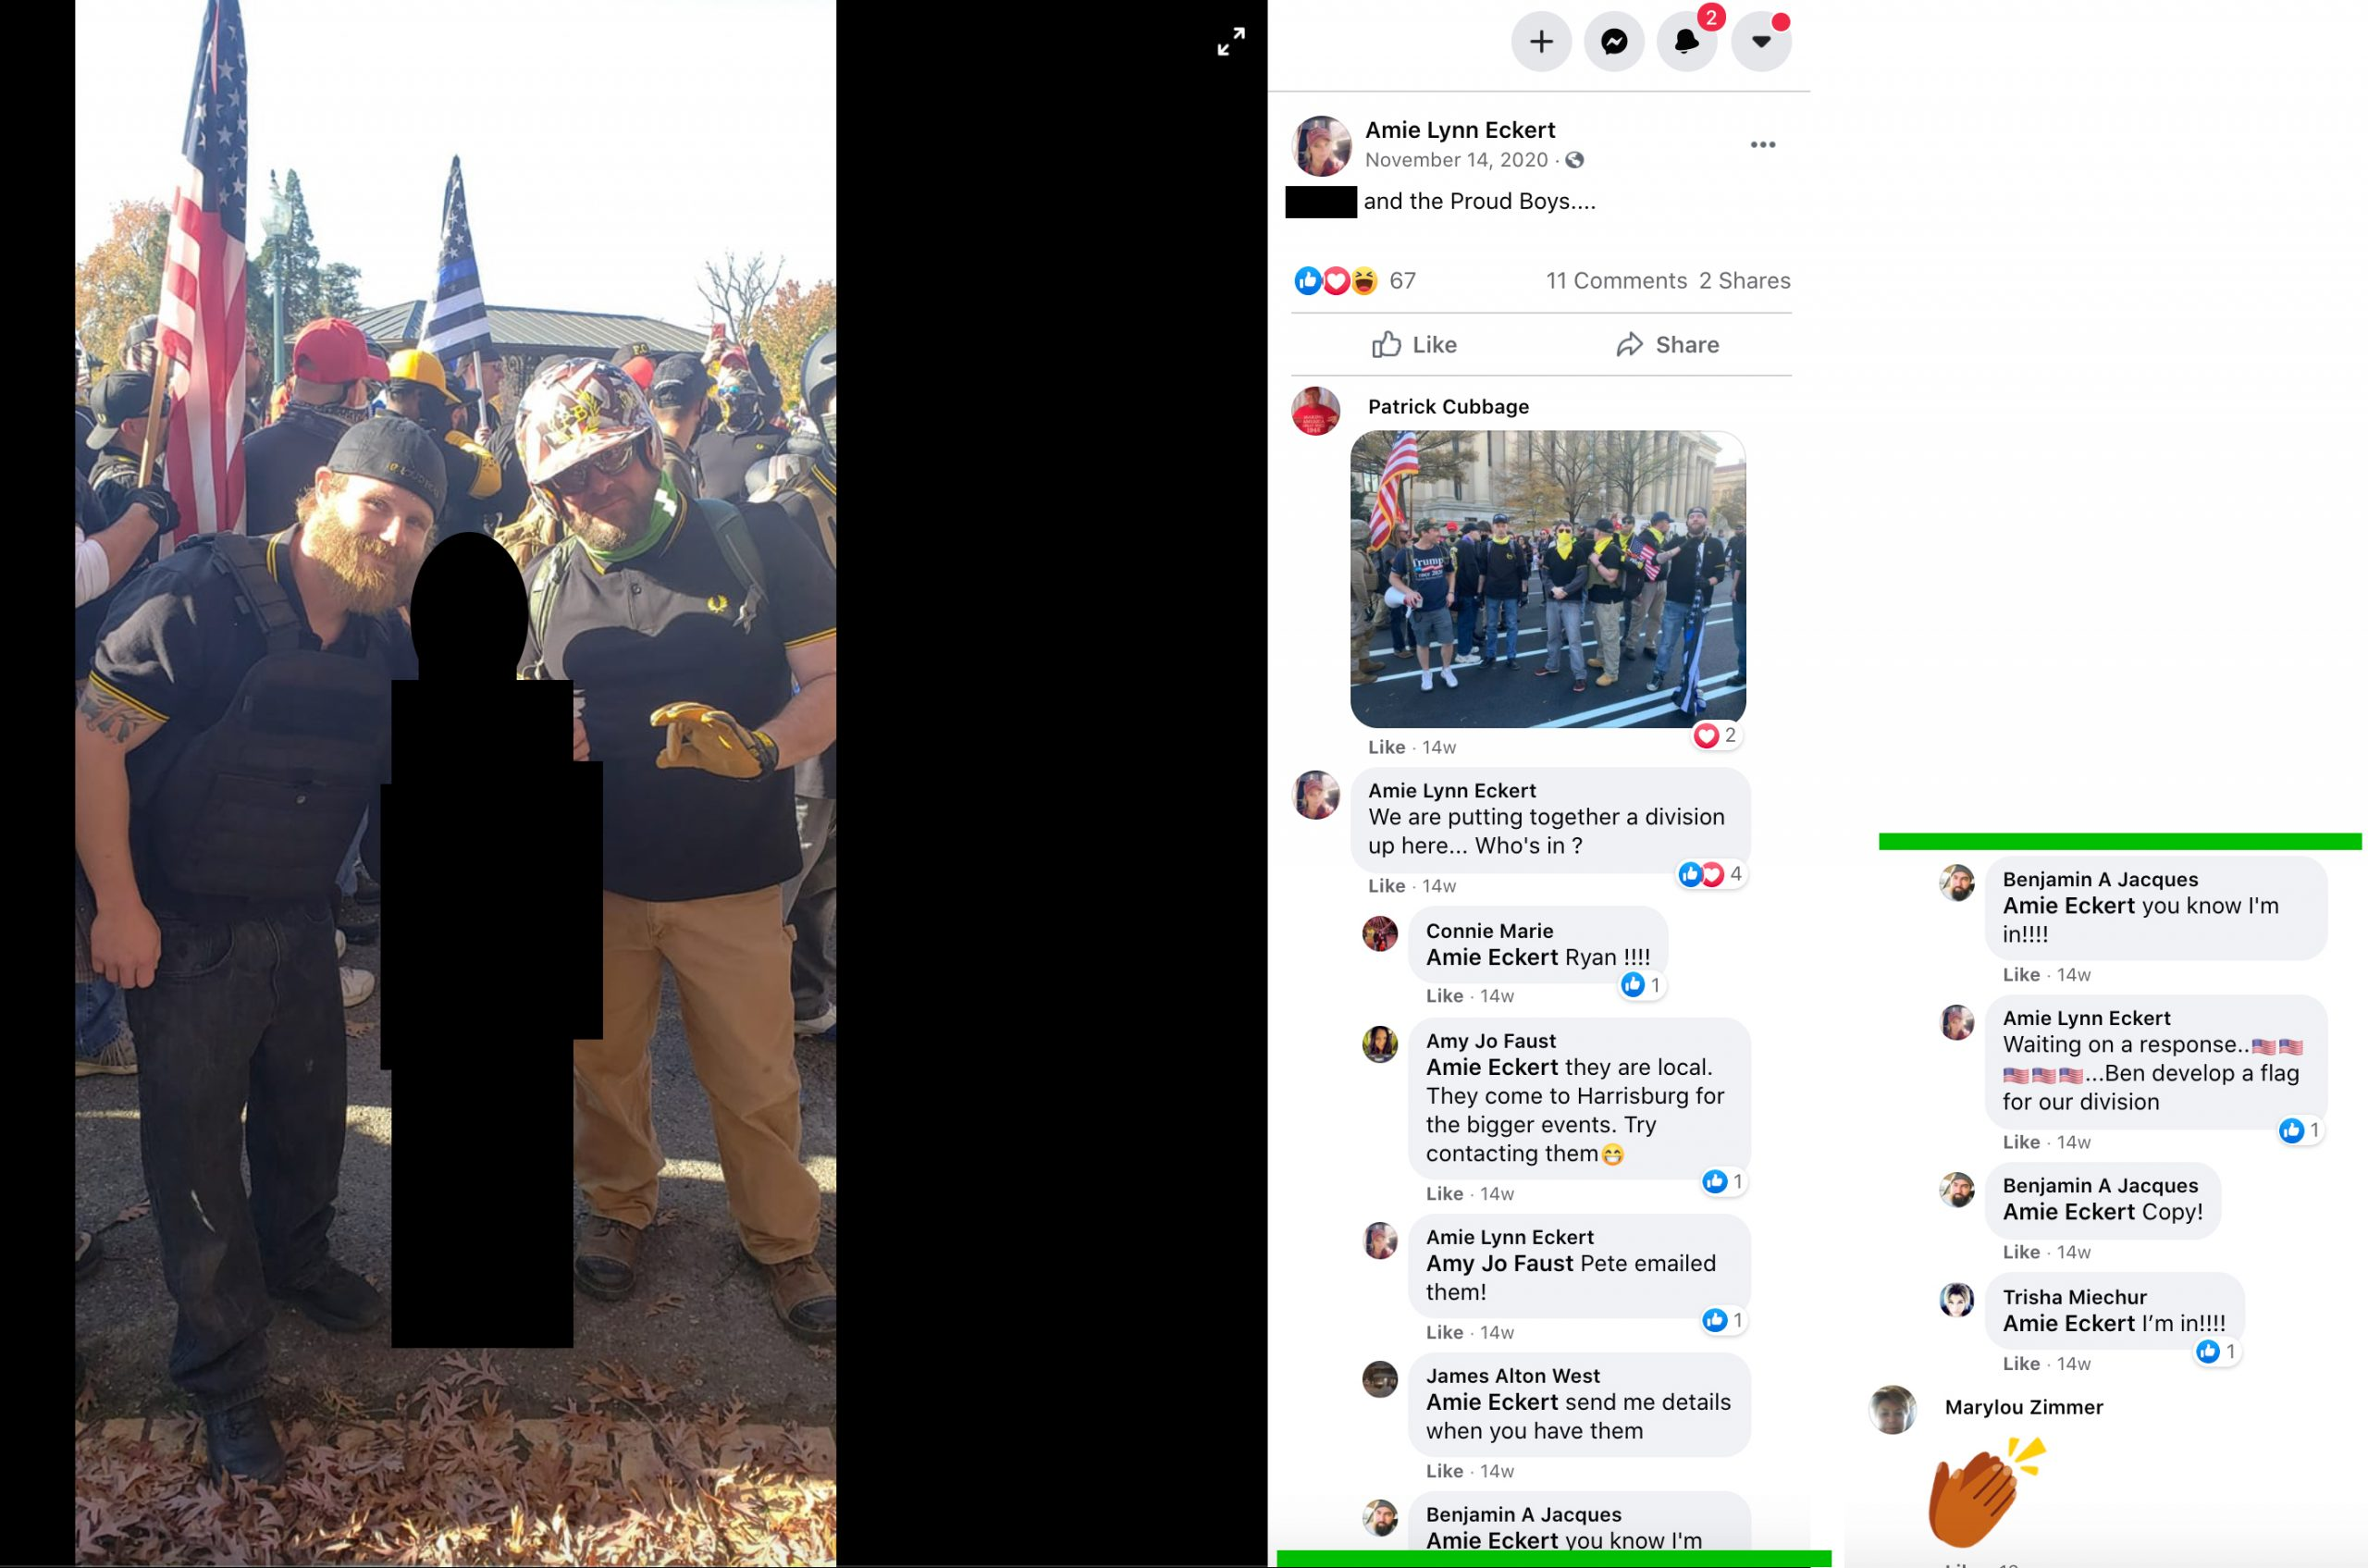 Screencap of Amie Eckert's Facebook post from November 14th, 2020. On the left, an image of Eckert's elementary-age child (blacked out for the child's privacy), posing with two Proud Boys in street fighting gear. On the right, comments in support of the Proud Boys.